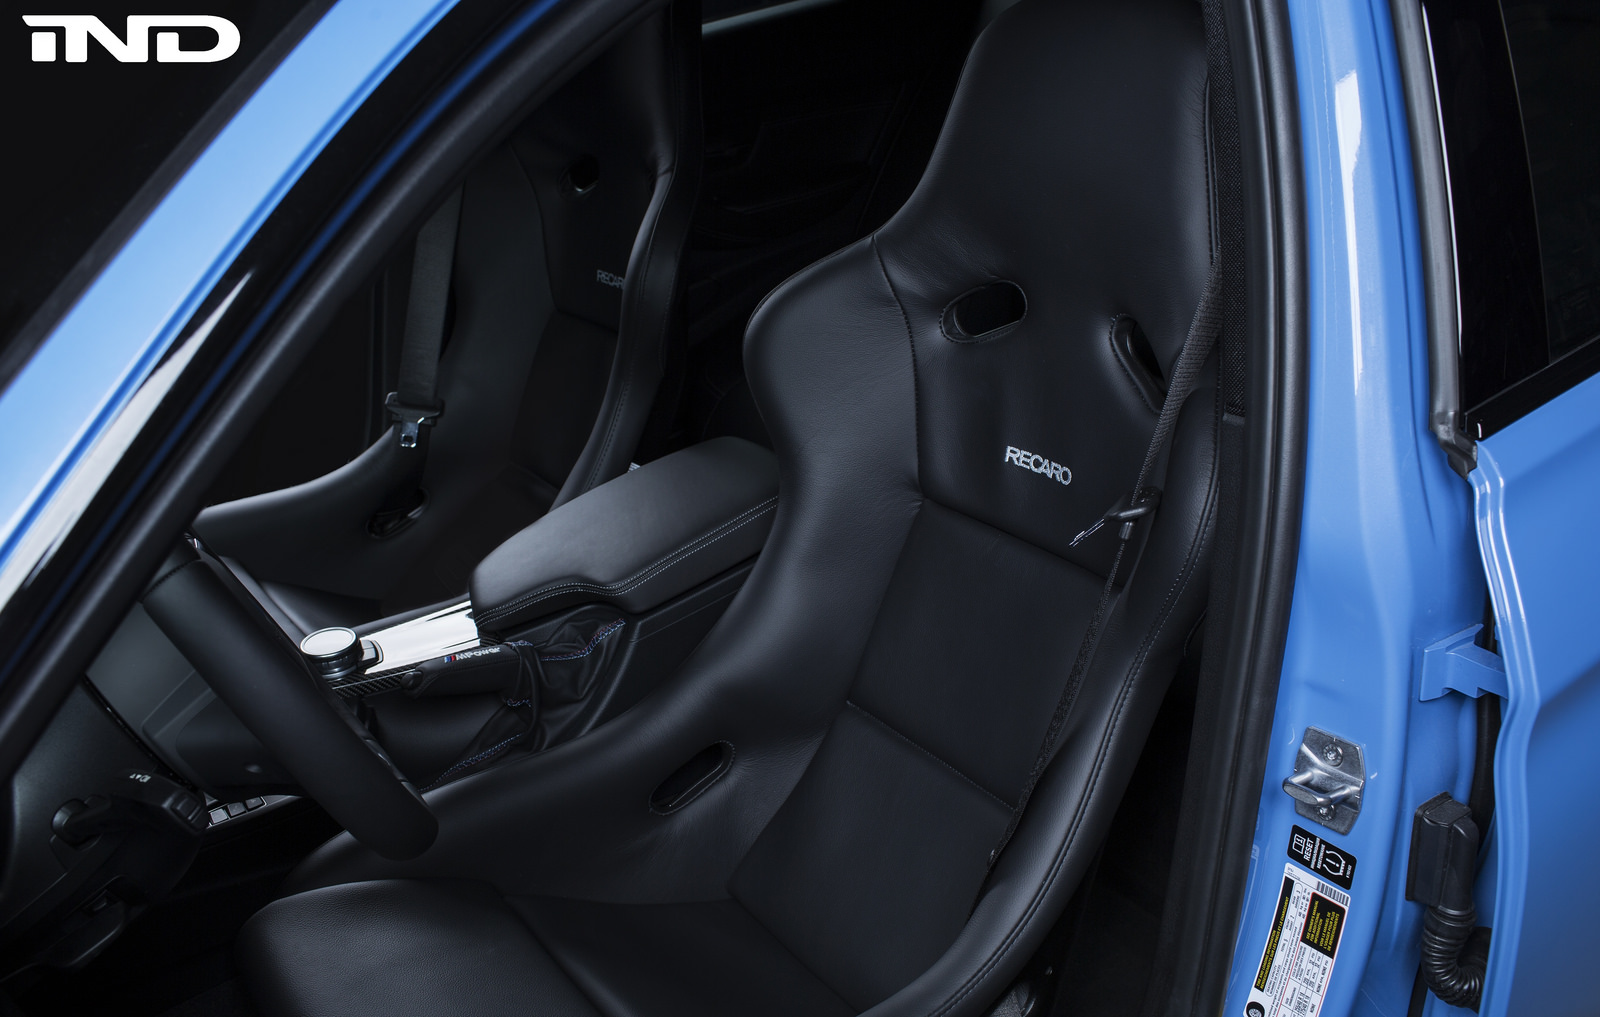 Bmw F80 M3 Gets Recaro Seats Autoevolution